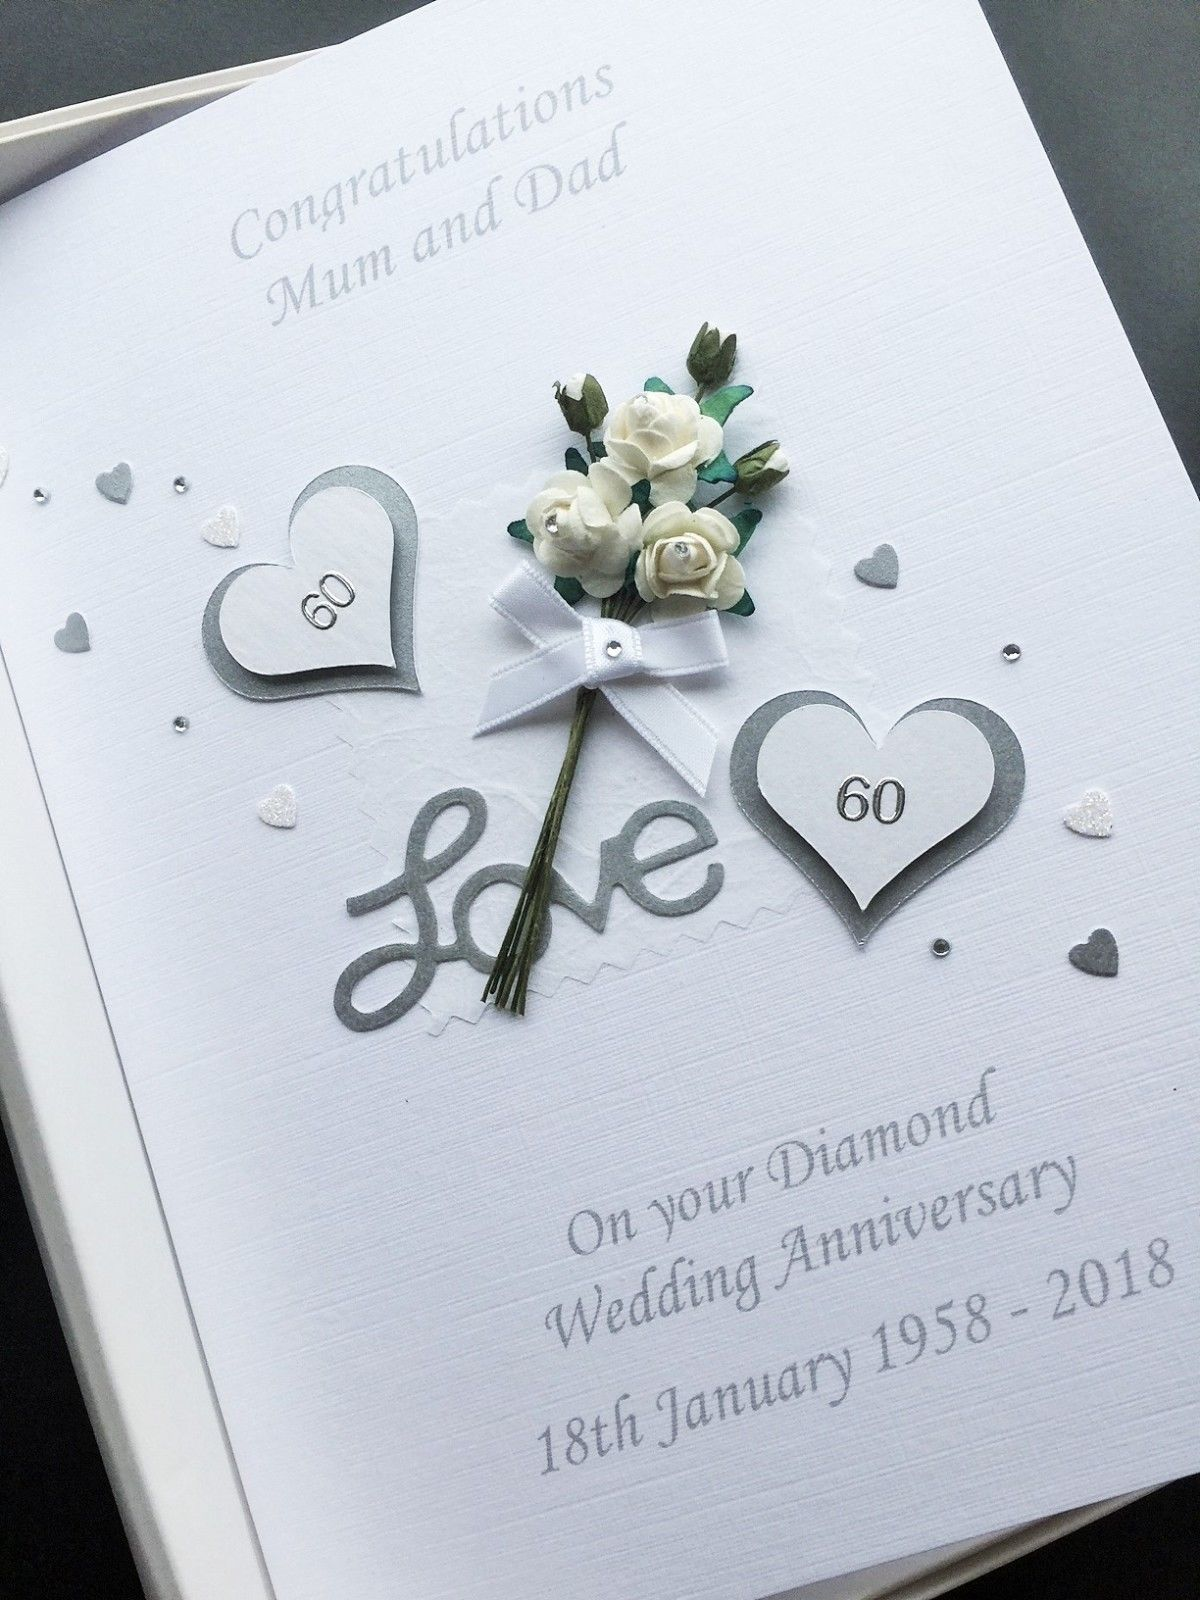 Details about 60th ANNIVERSARY CARD PERSONALISED DIAMOND